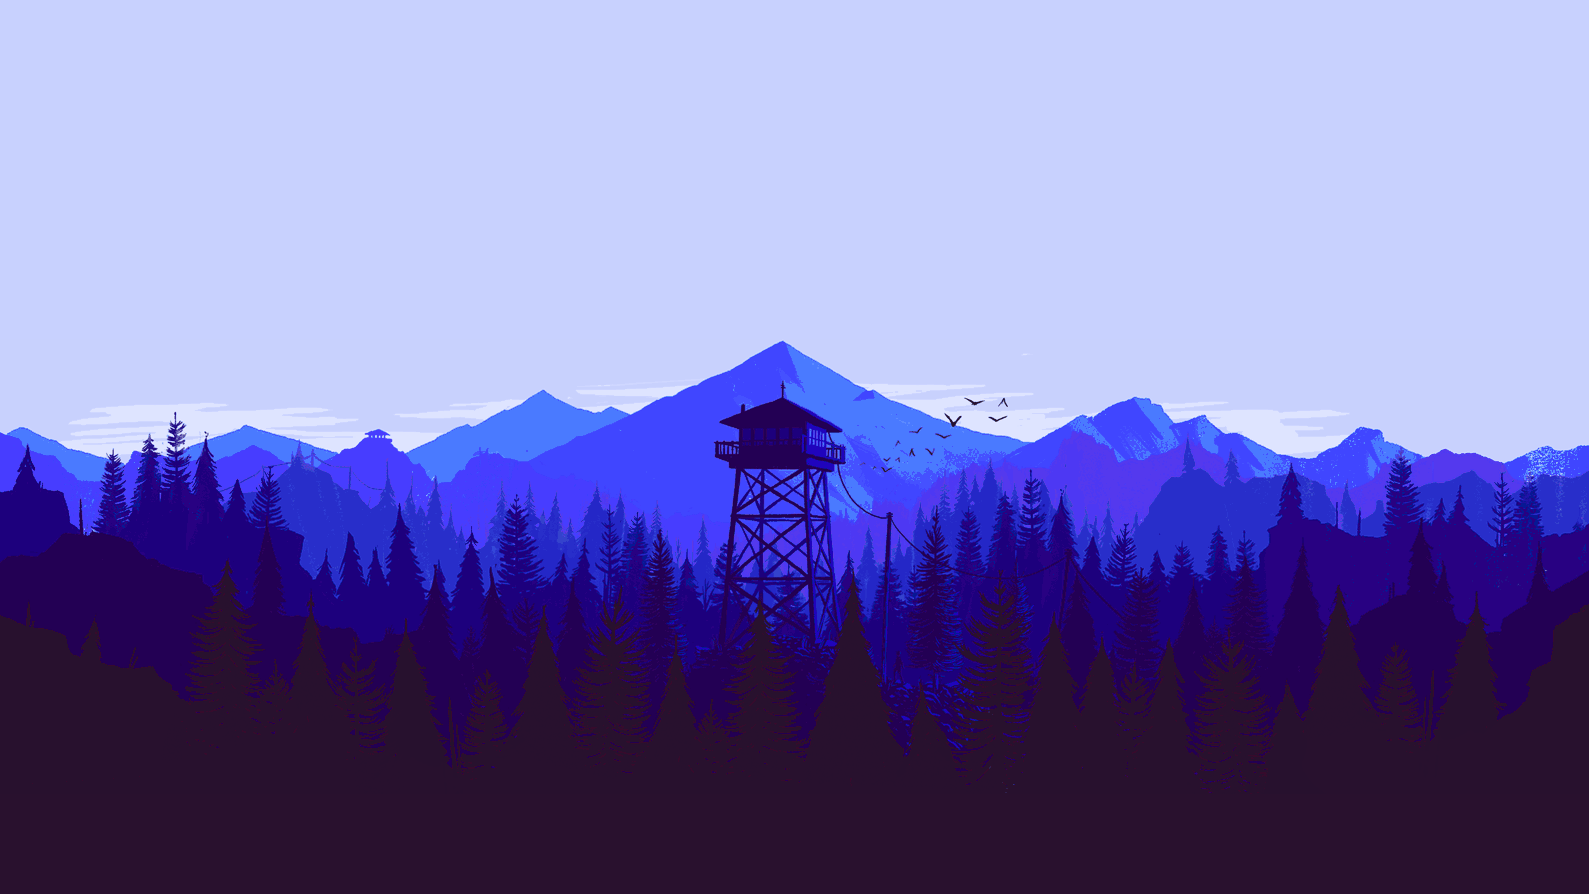 Firewatch, Tower, Trees, Forest, Blue background image